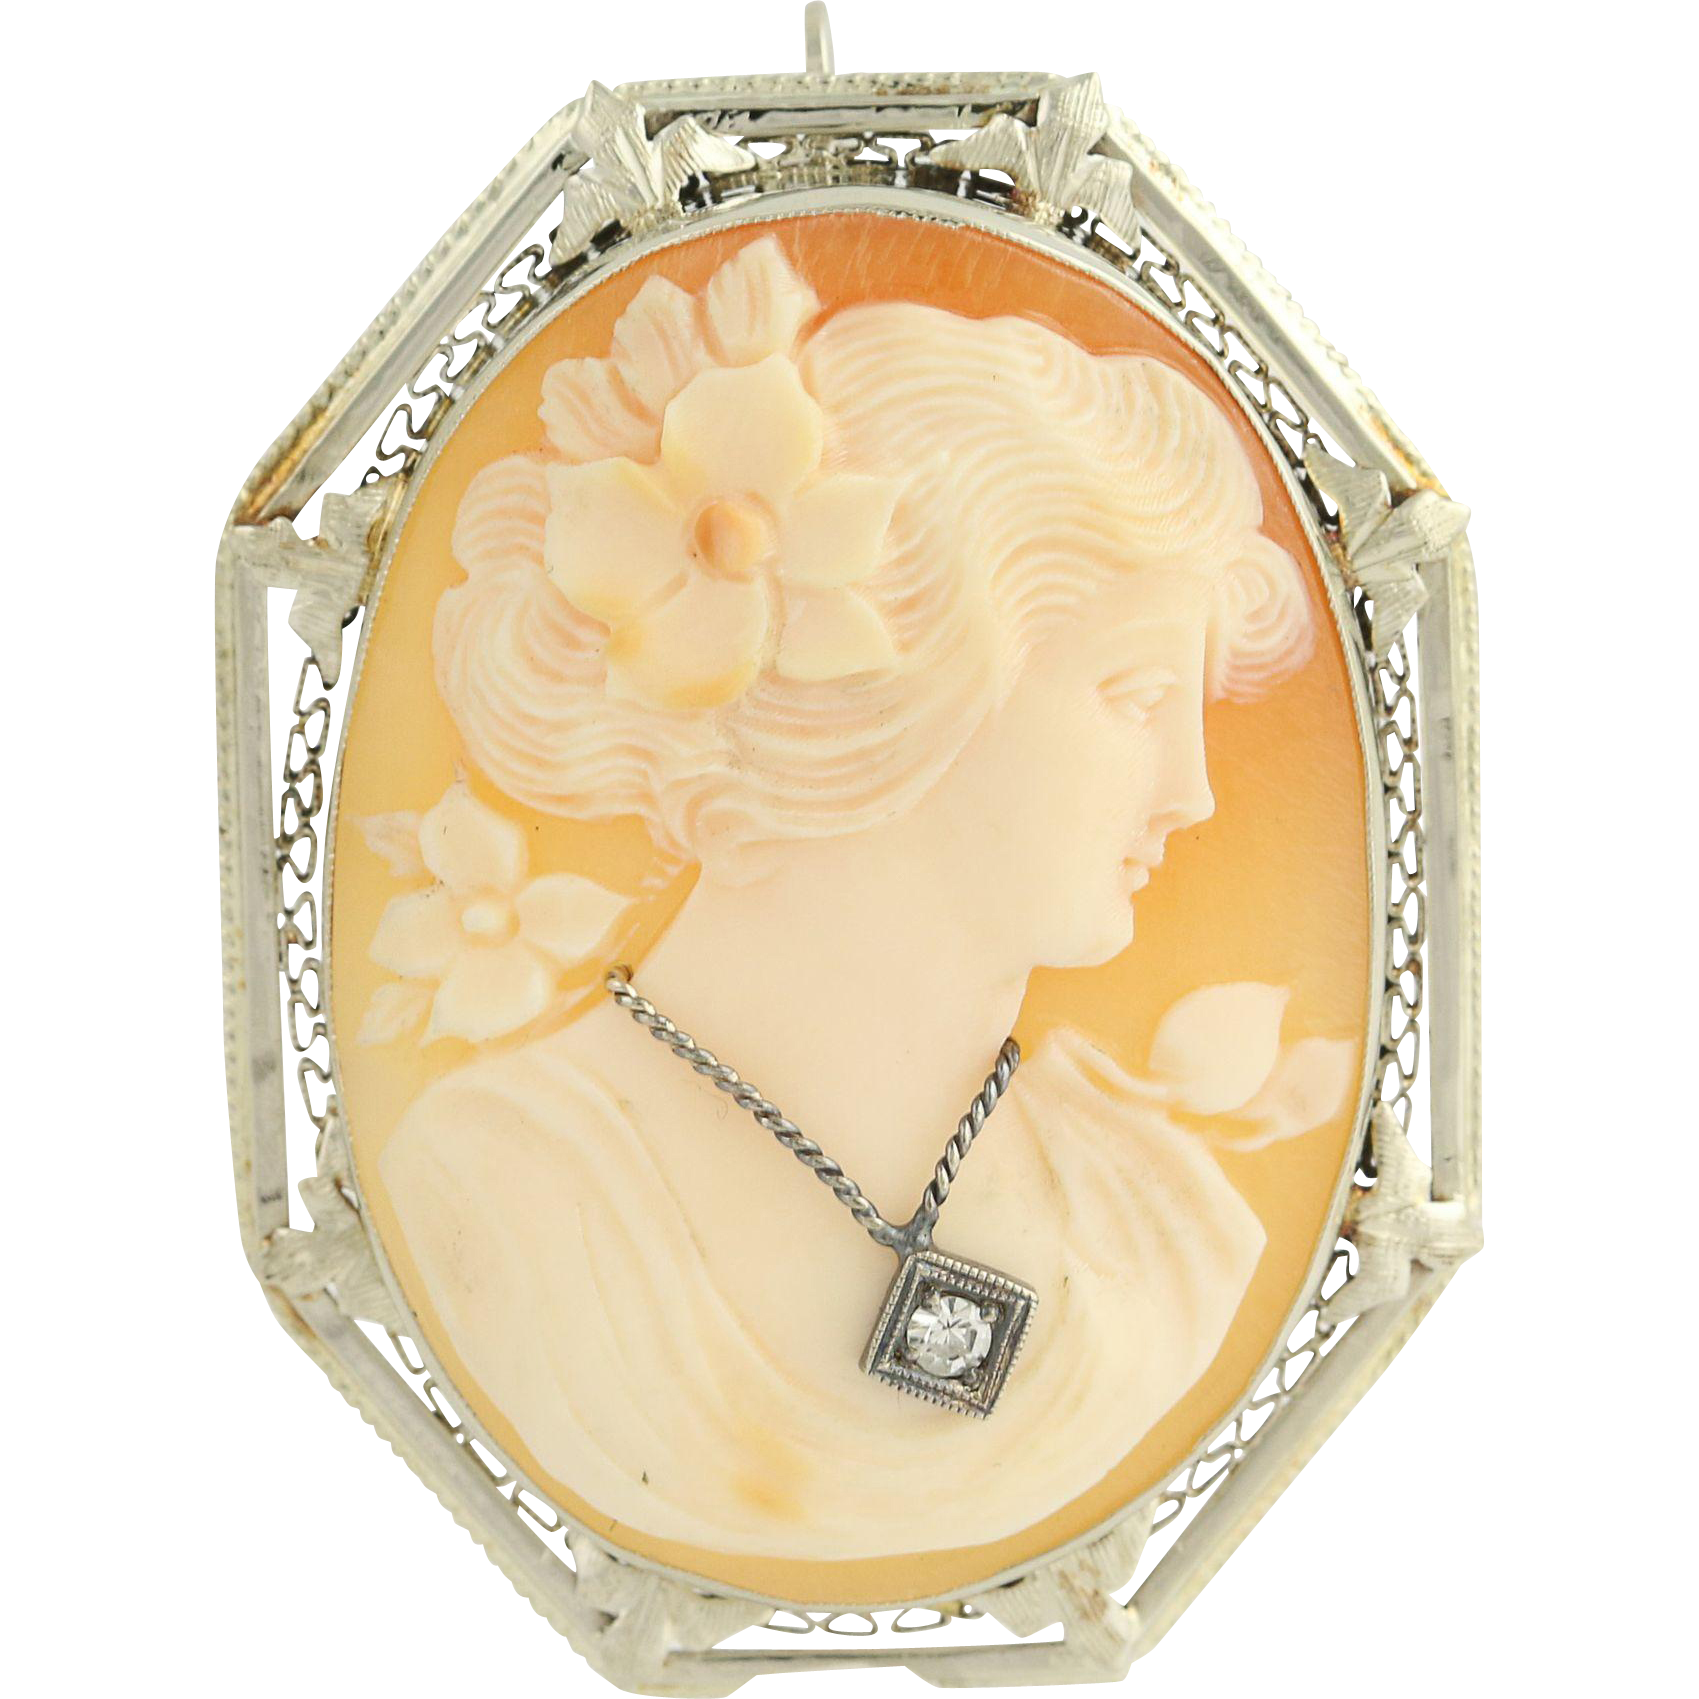 Art Deco Carved Shell Cameo Brooch / Pendant - 14k White Gold En Habile .04ct